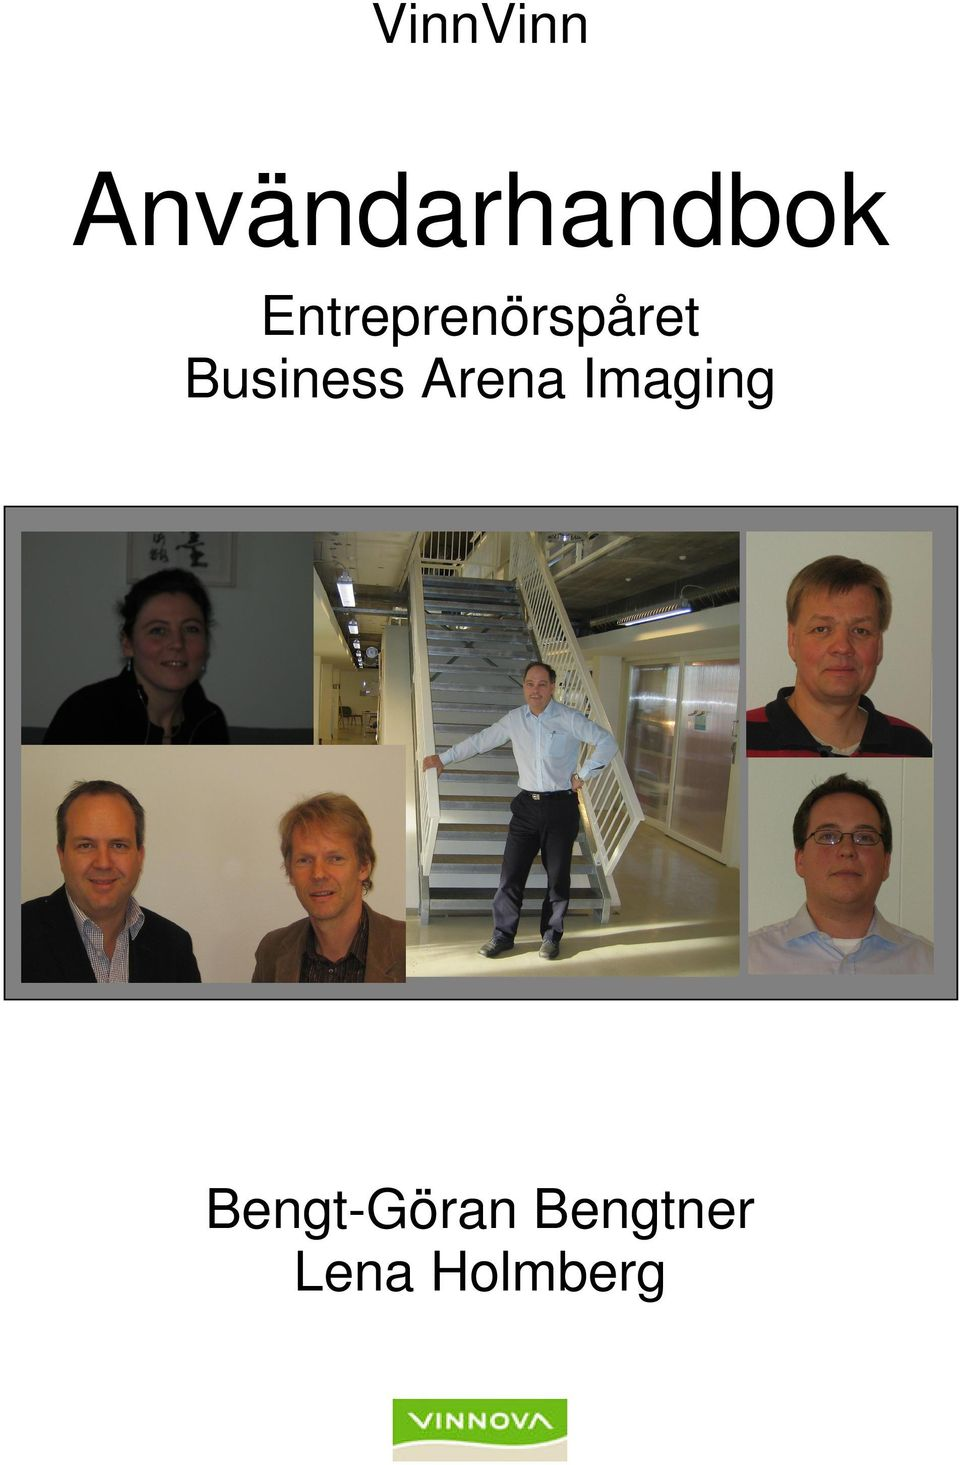 Business Arena Imaging